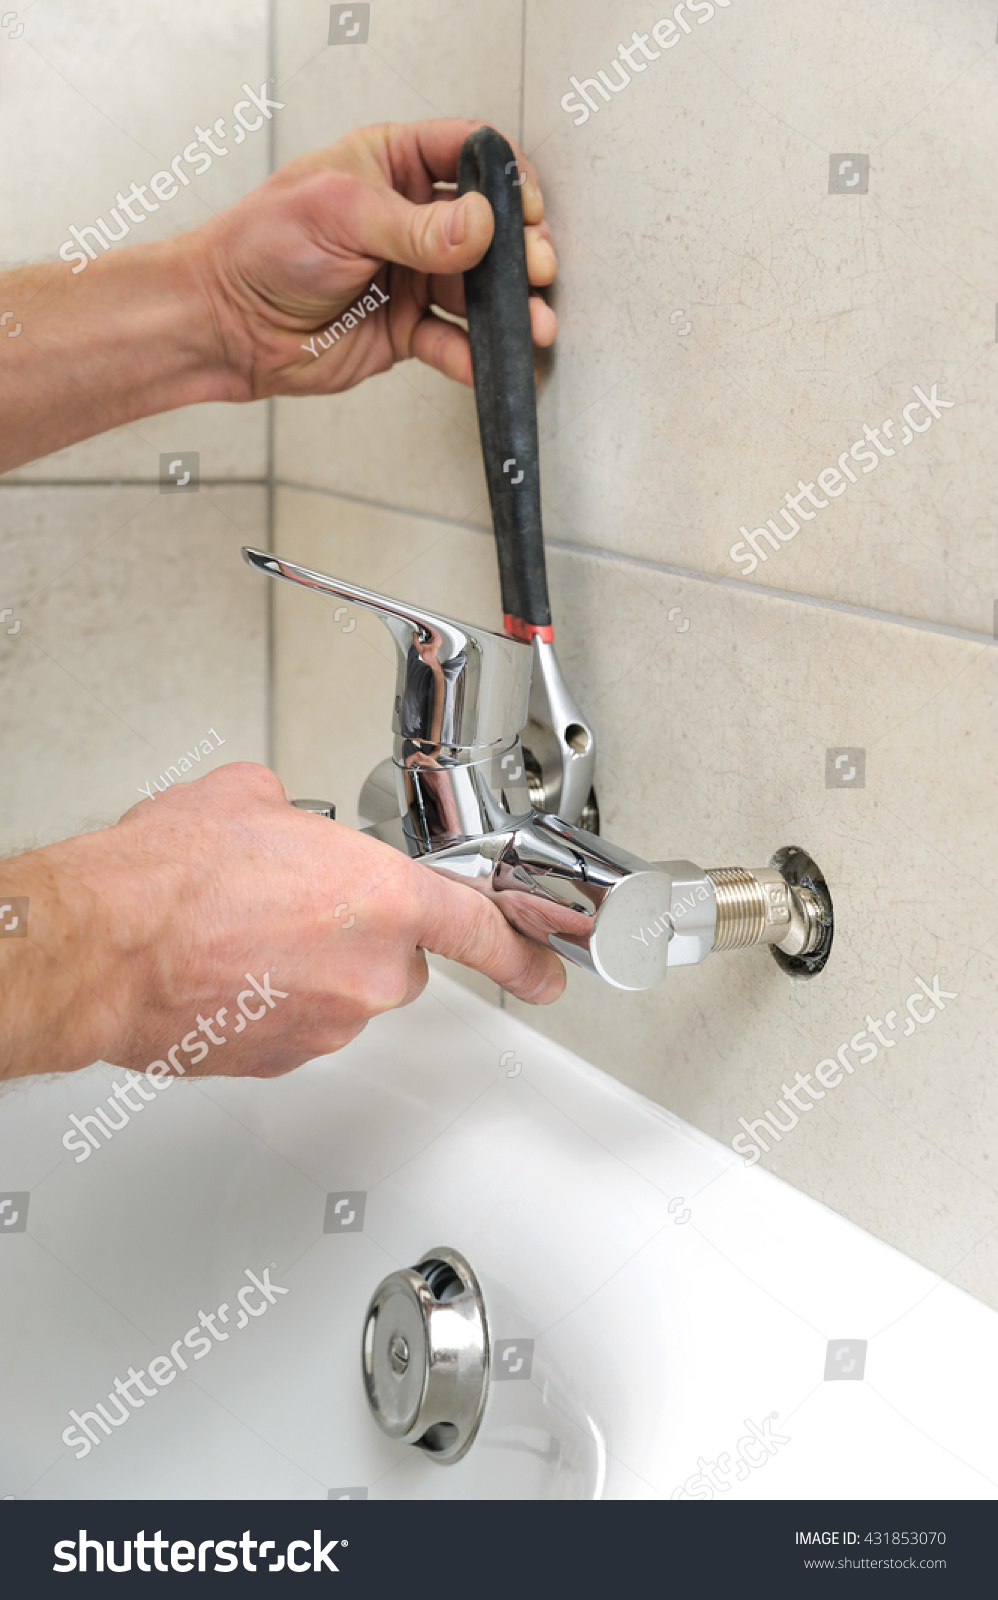 Plumber Fixing Bath Faucet Adjustable Wrench Stock Photo (Royalty ...